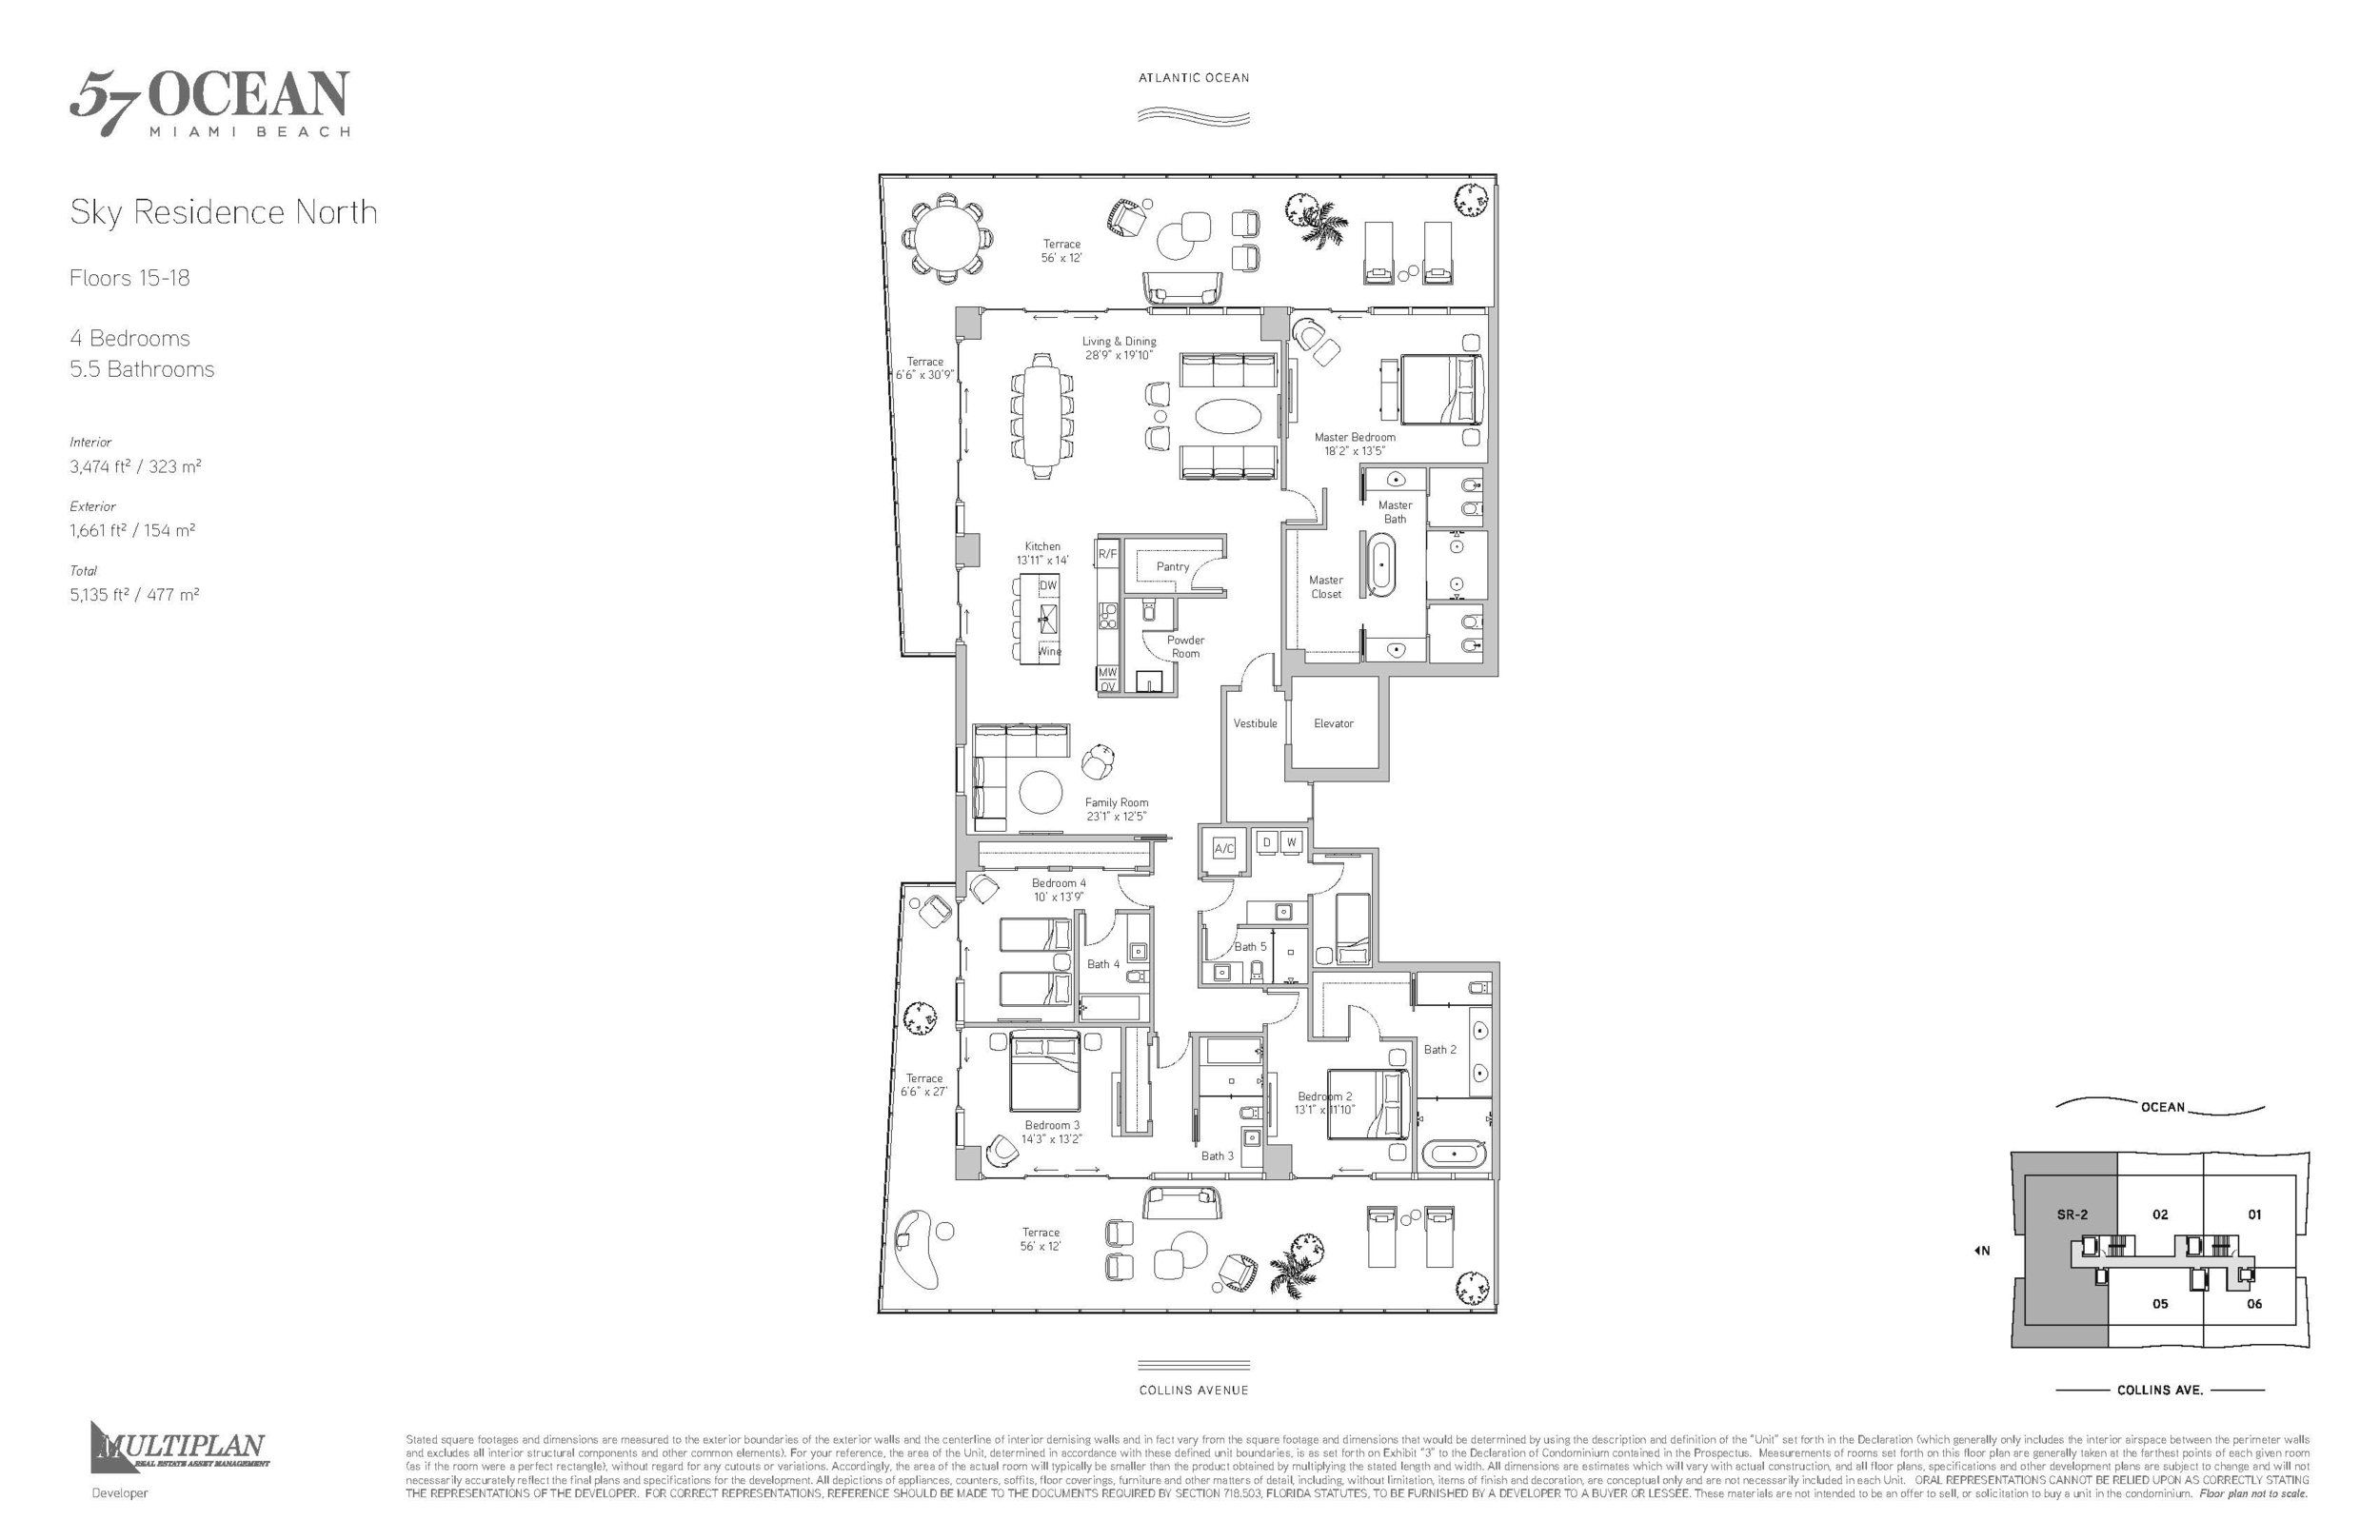 57 Ocean Floor Plans - 4 Bedroom Sky Residence North